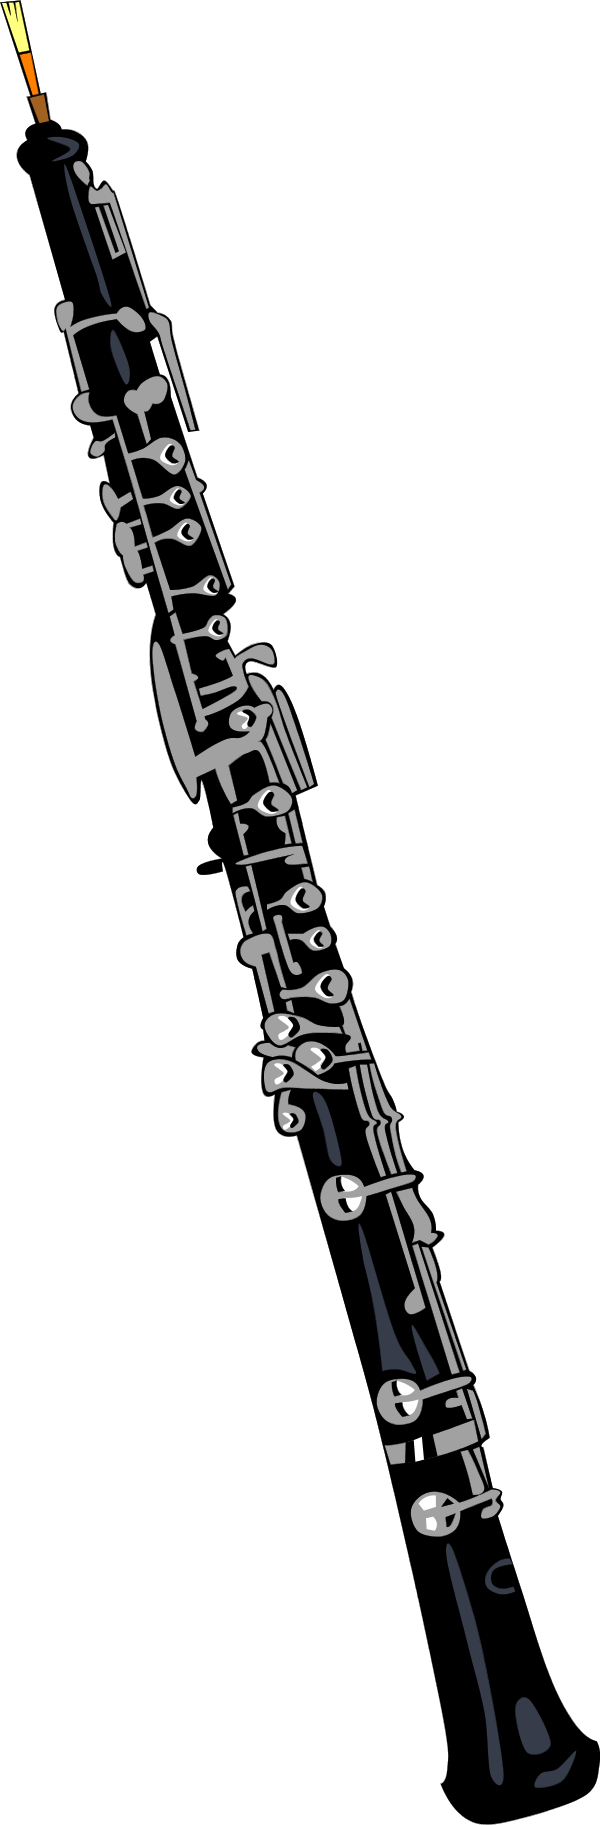 Oboe drawing soprano. Clipart panda free images